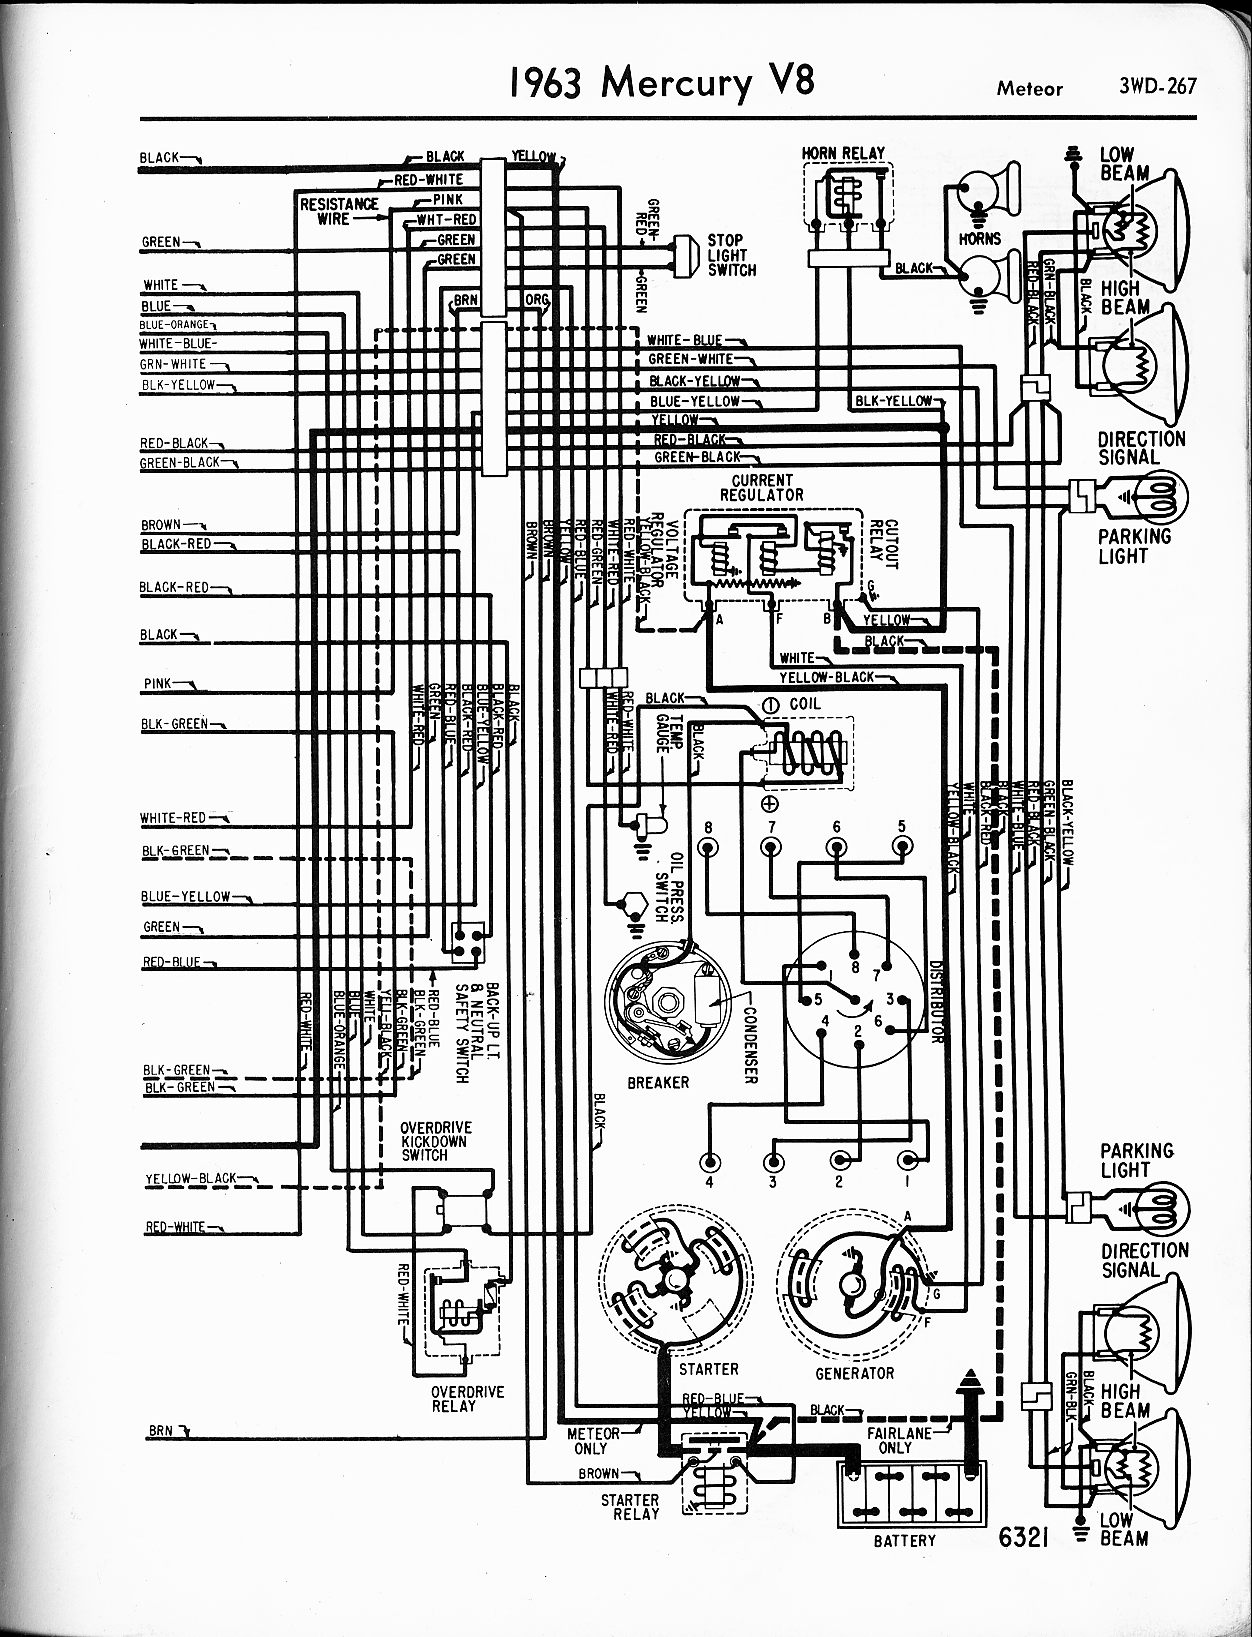 1961 Comet Wiring Diagrams Not Lossing Diagram 1957 Bel Air Dash Mercury The Old Car Manual Project Dashboard 1967